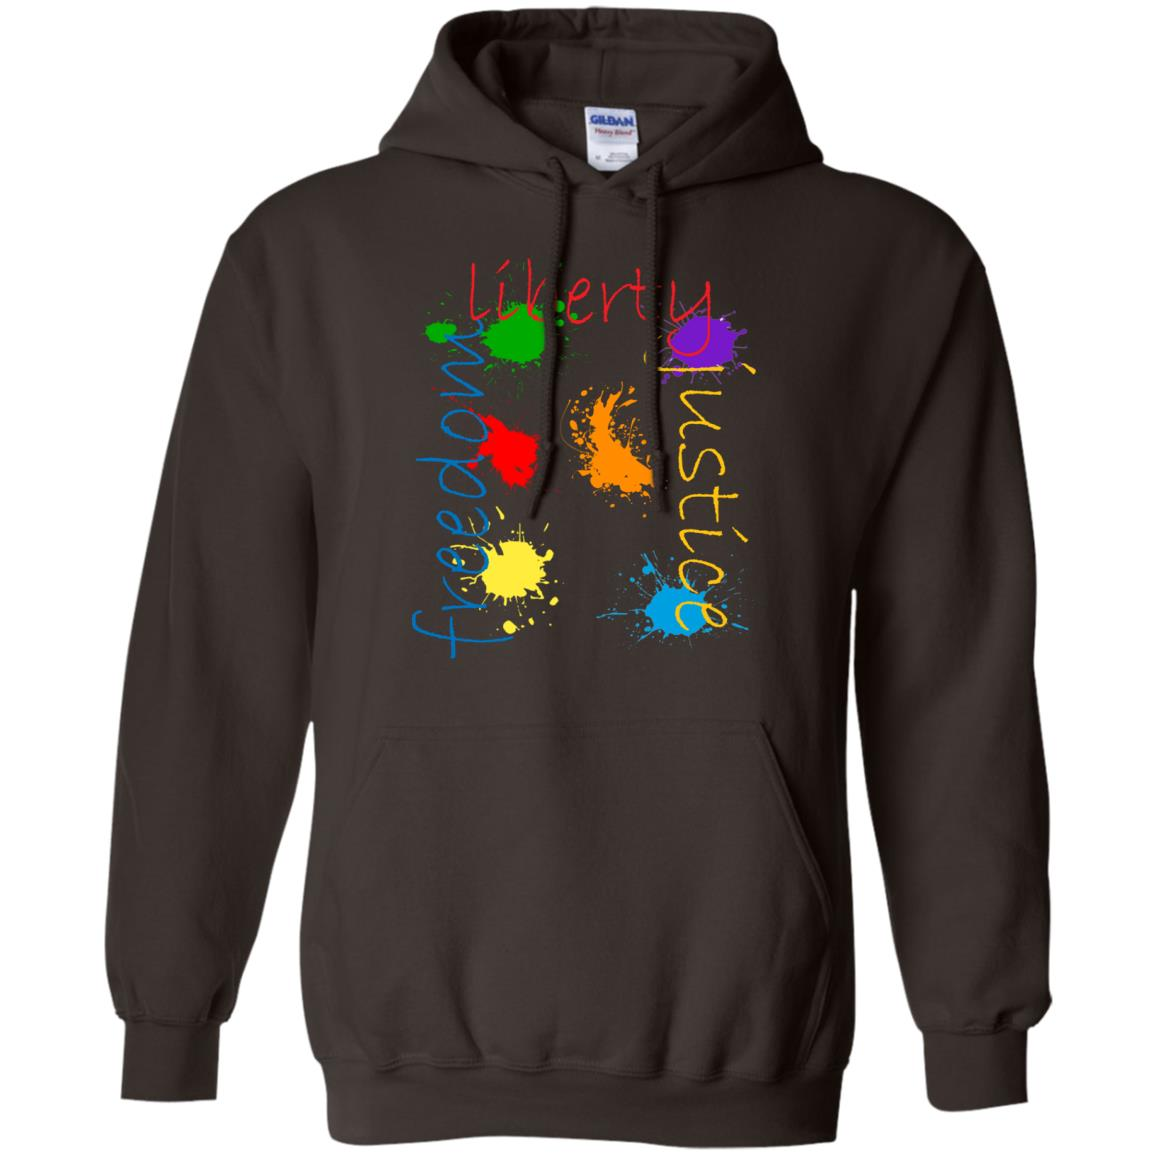 Freedom Justice Liberty Artistic Paintball Paint Splatter Pullover Hoodie